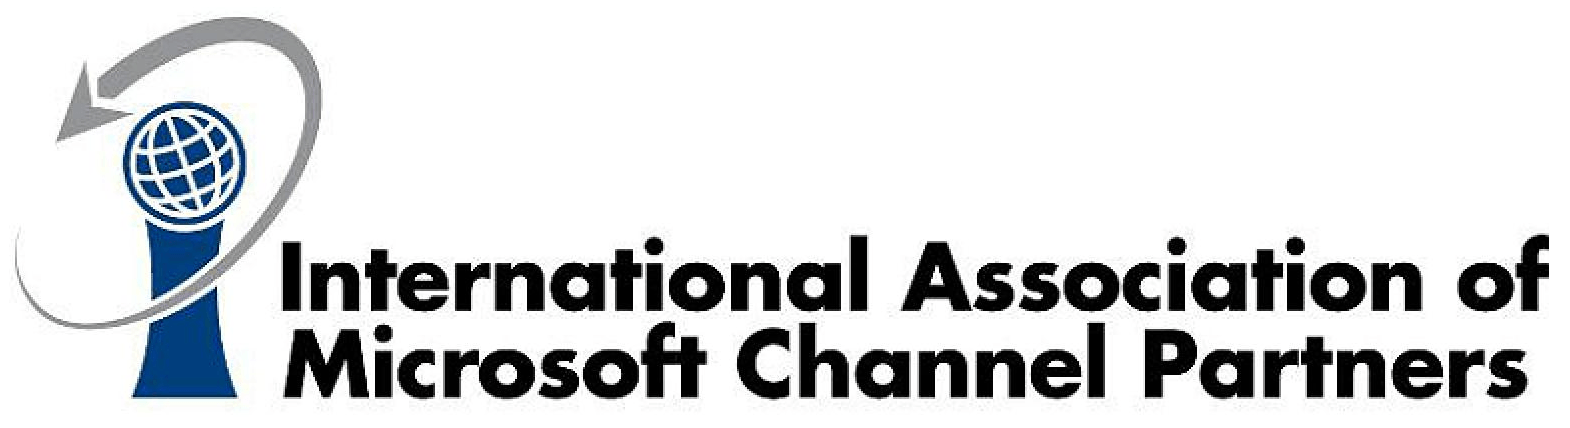 International Association of Microsoft Channel Partners (IAMCP)